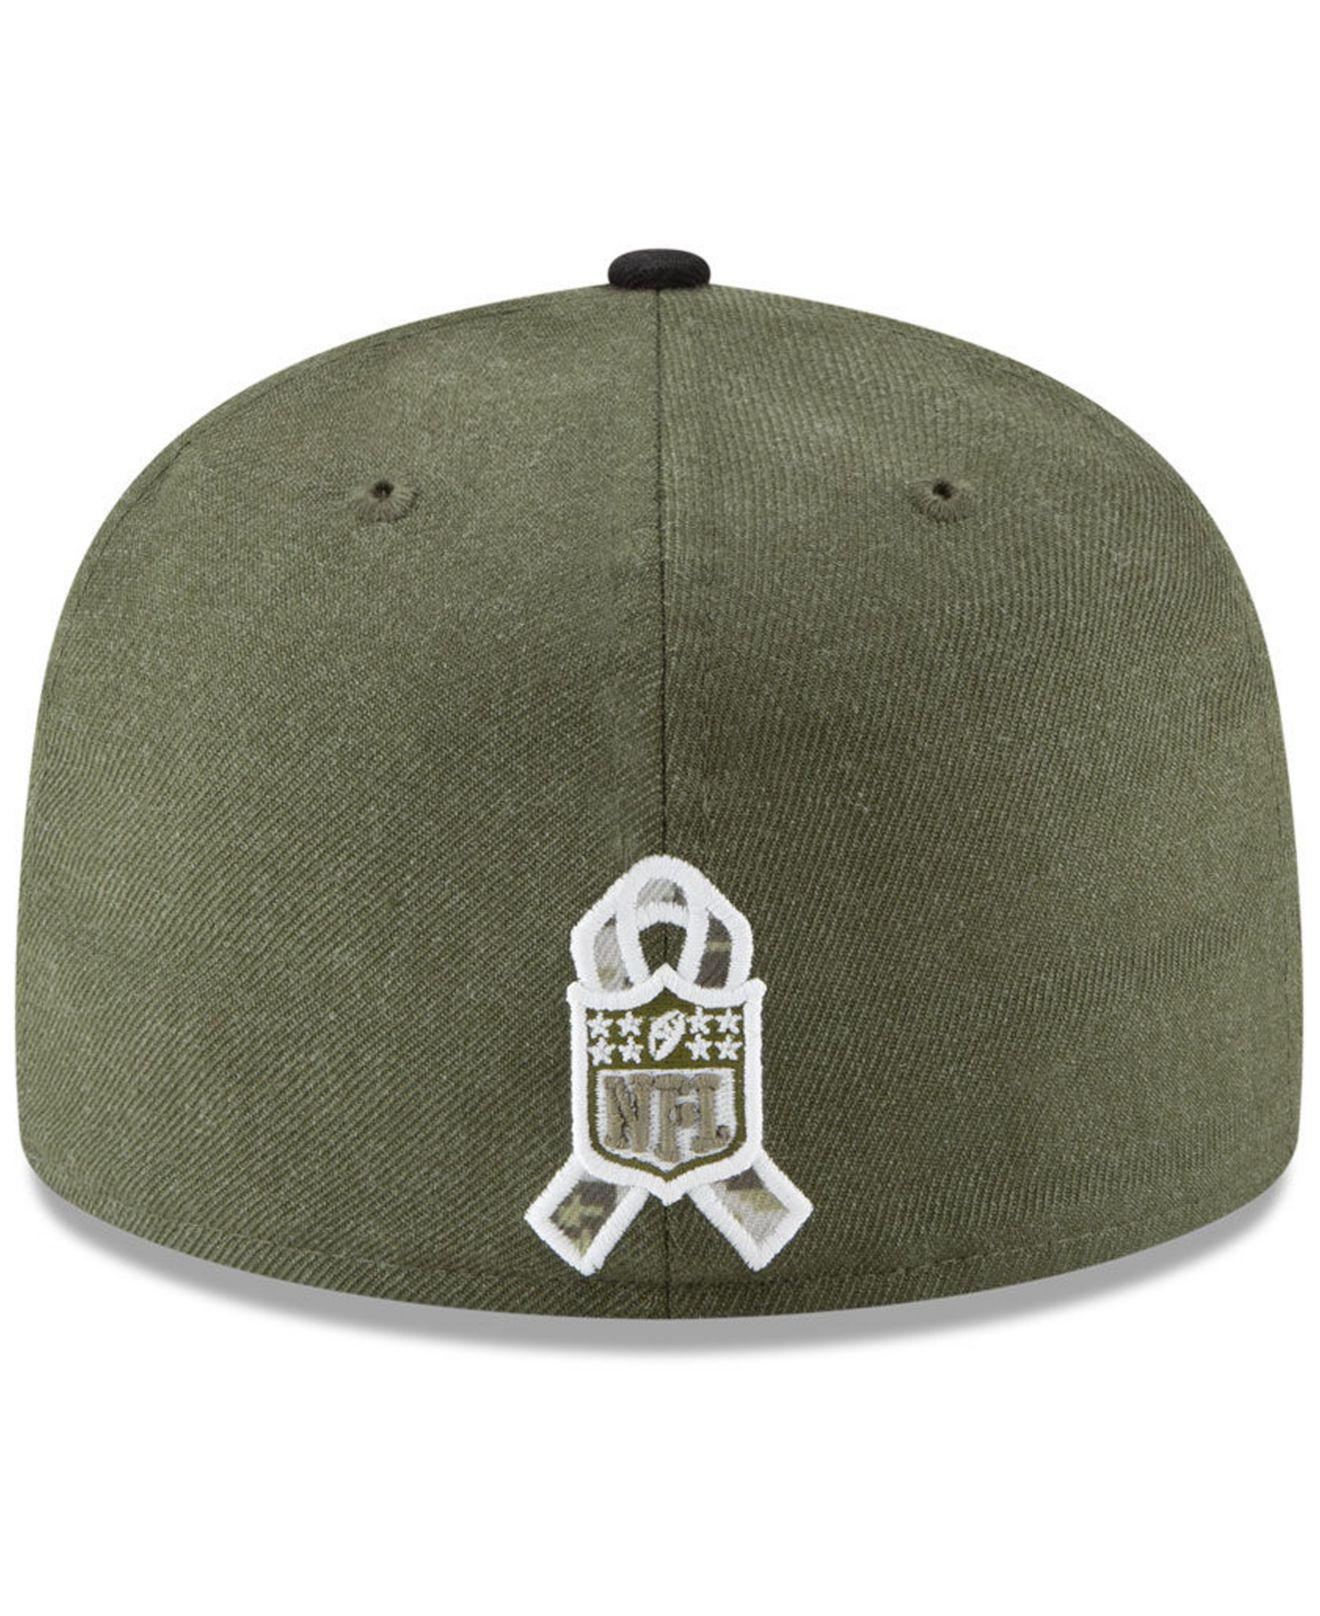 KTZ - Green New Orleans Saints Salute To Service 59fifty Fitted Cap for Men  - Lyst. View fullscreen aee6a7e4f